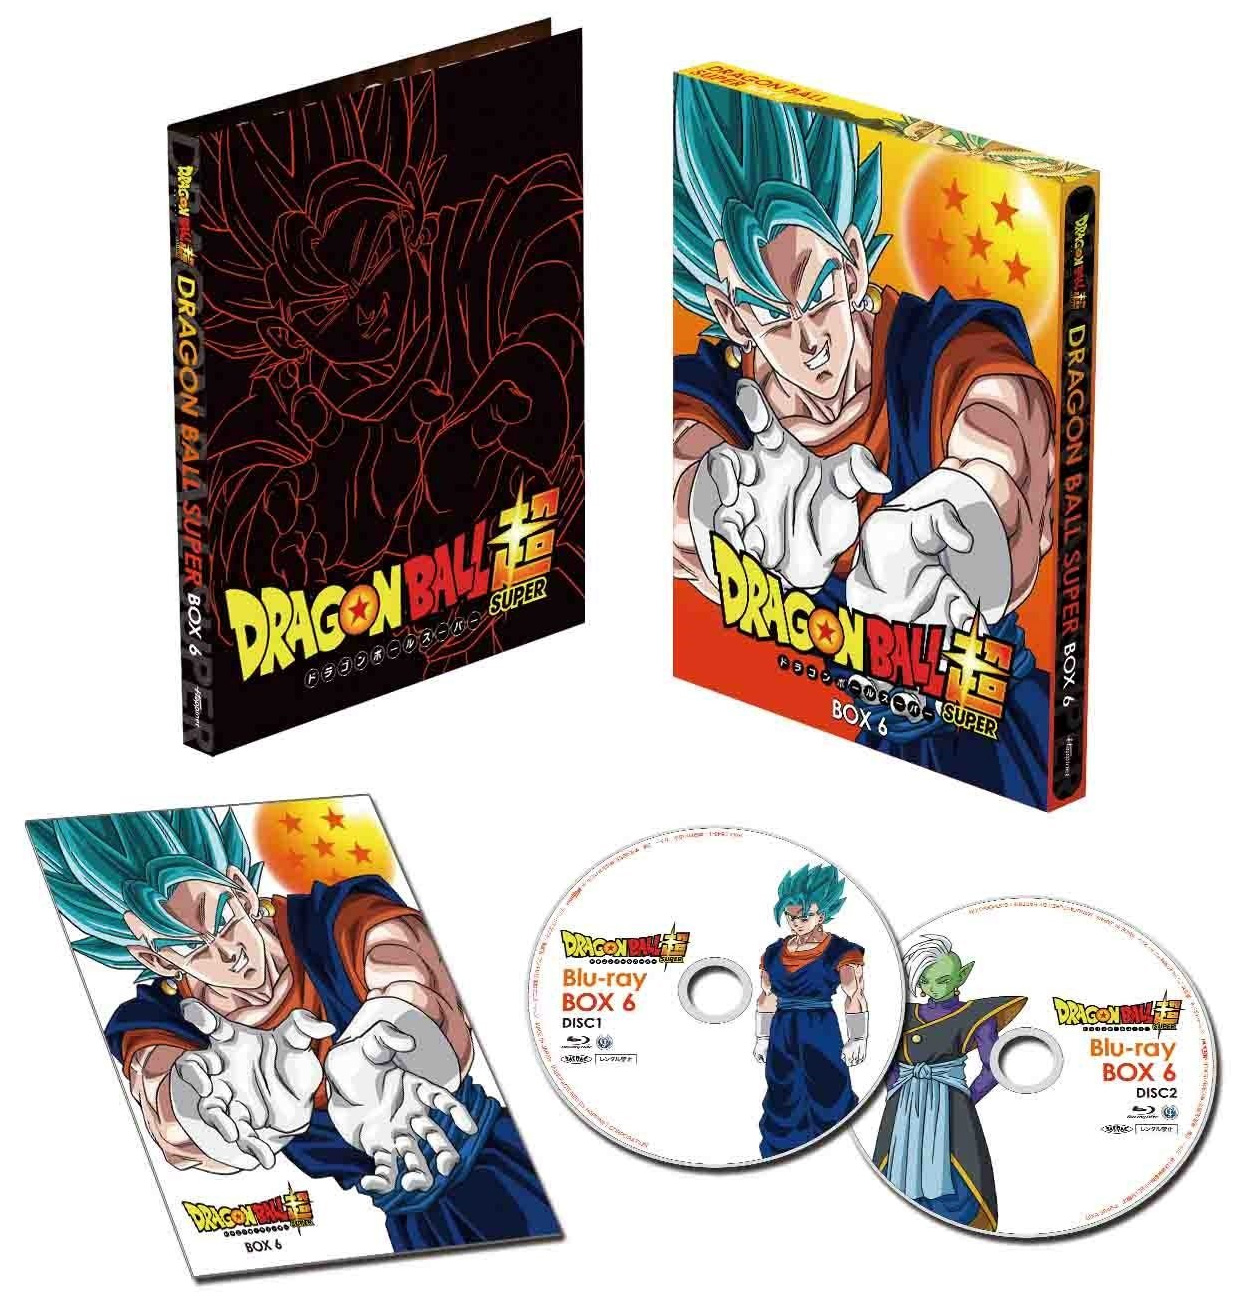 Dragon Ball Super BOX 6 DVD/Blu-ray